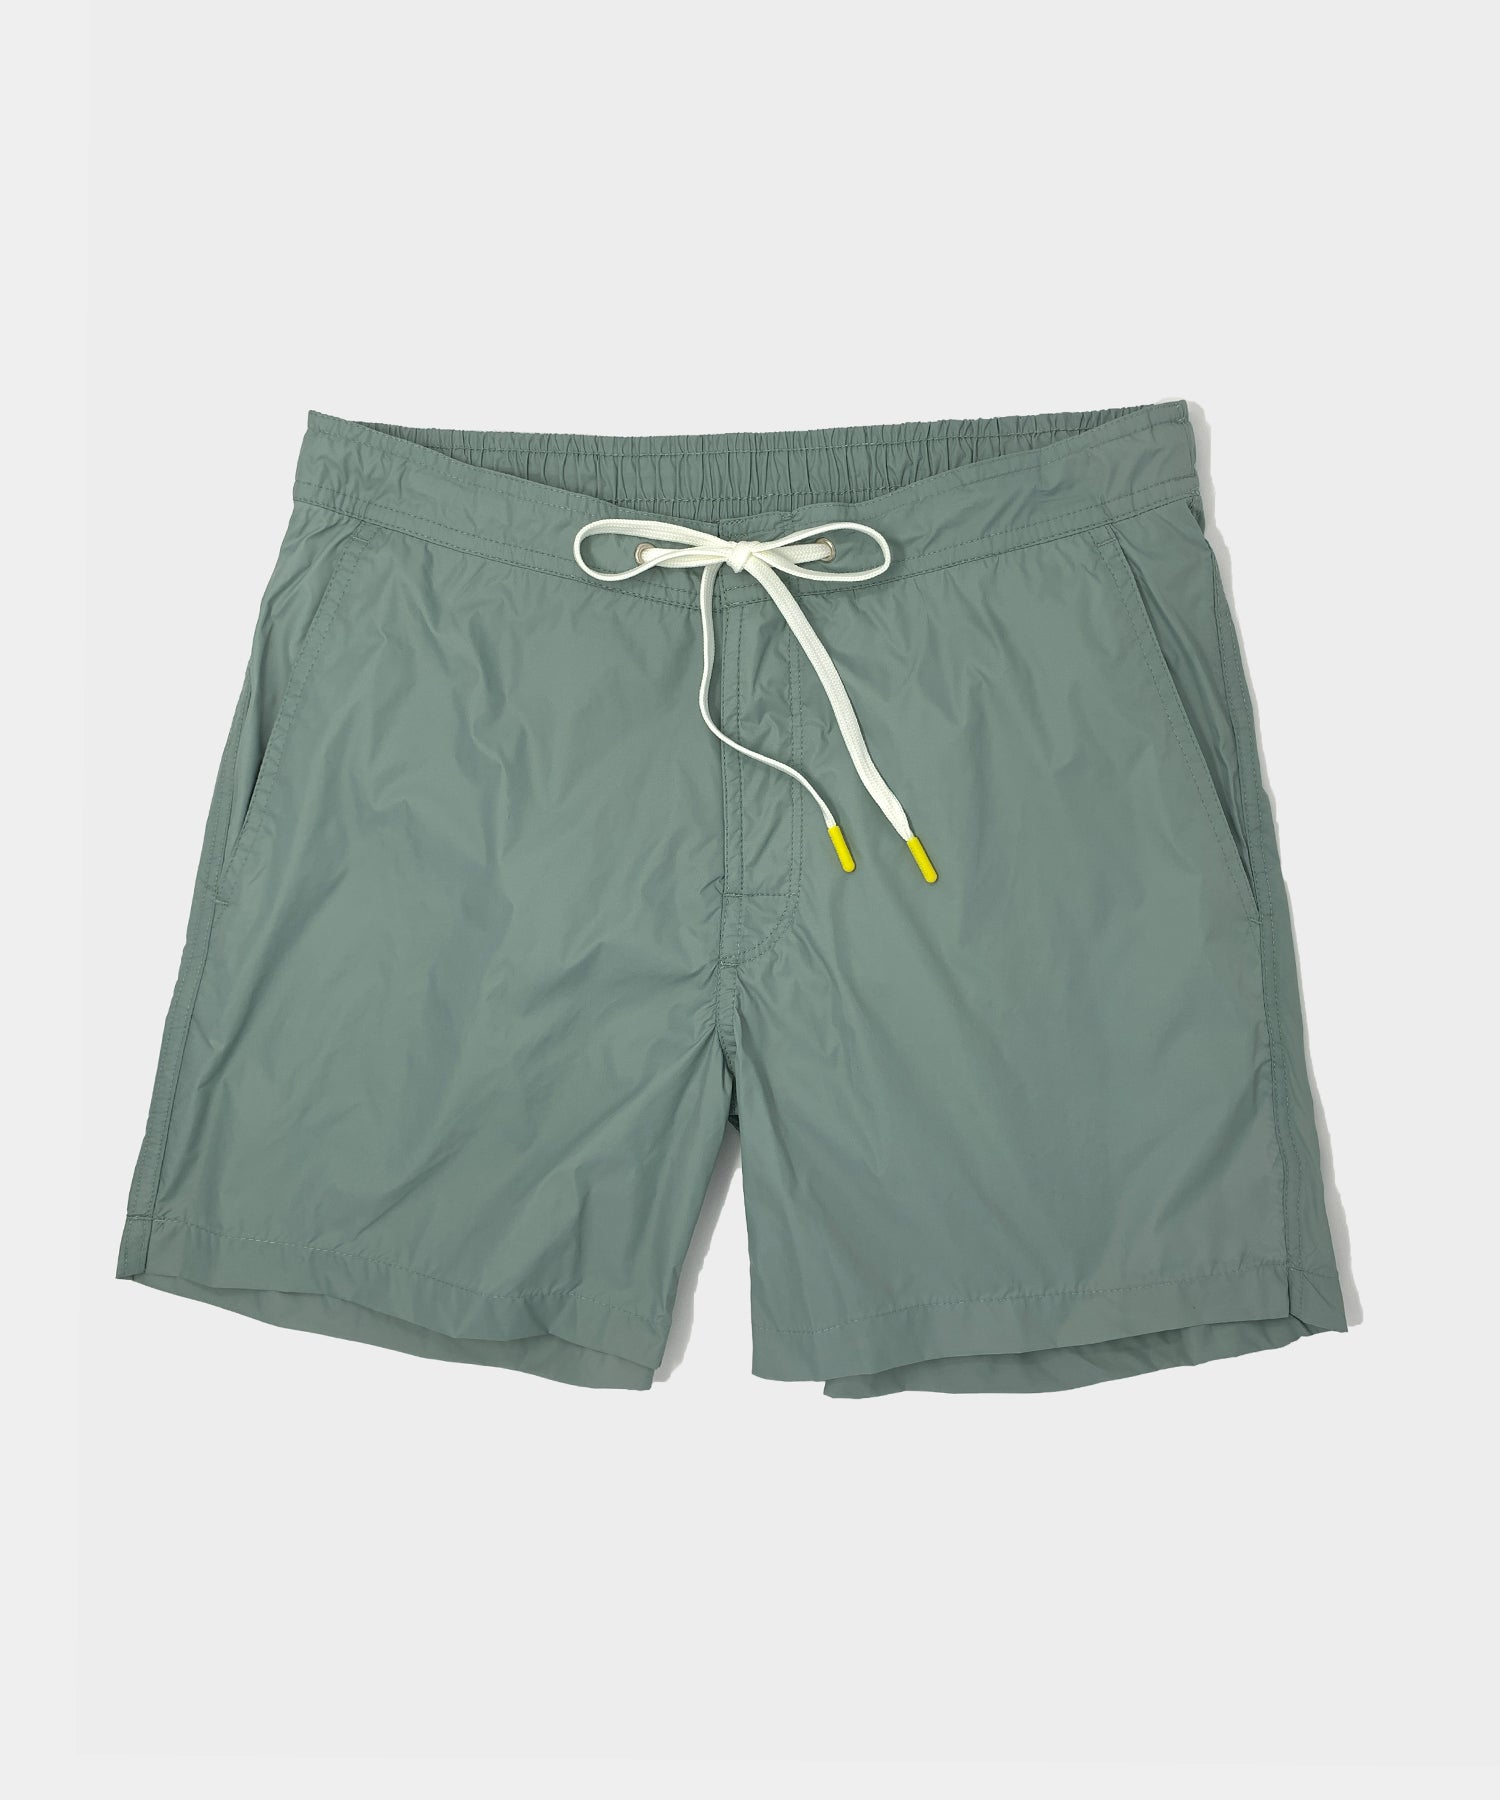 Hartford Kuta Swim Trunk in Sage